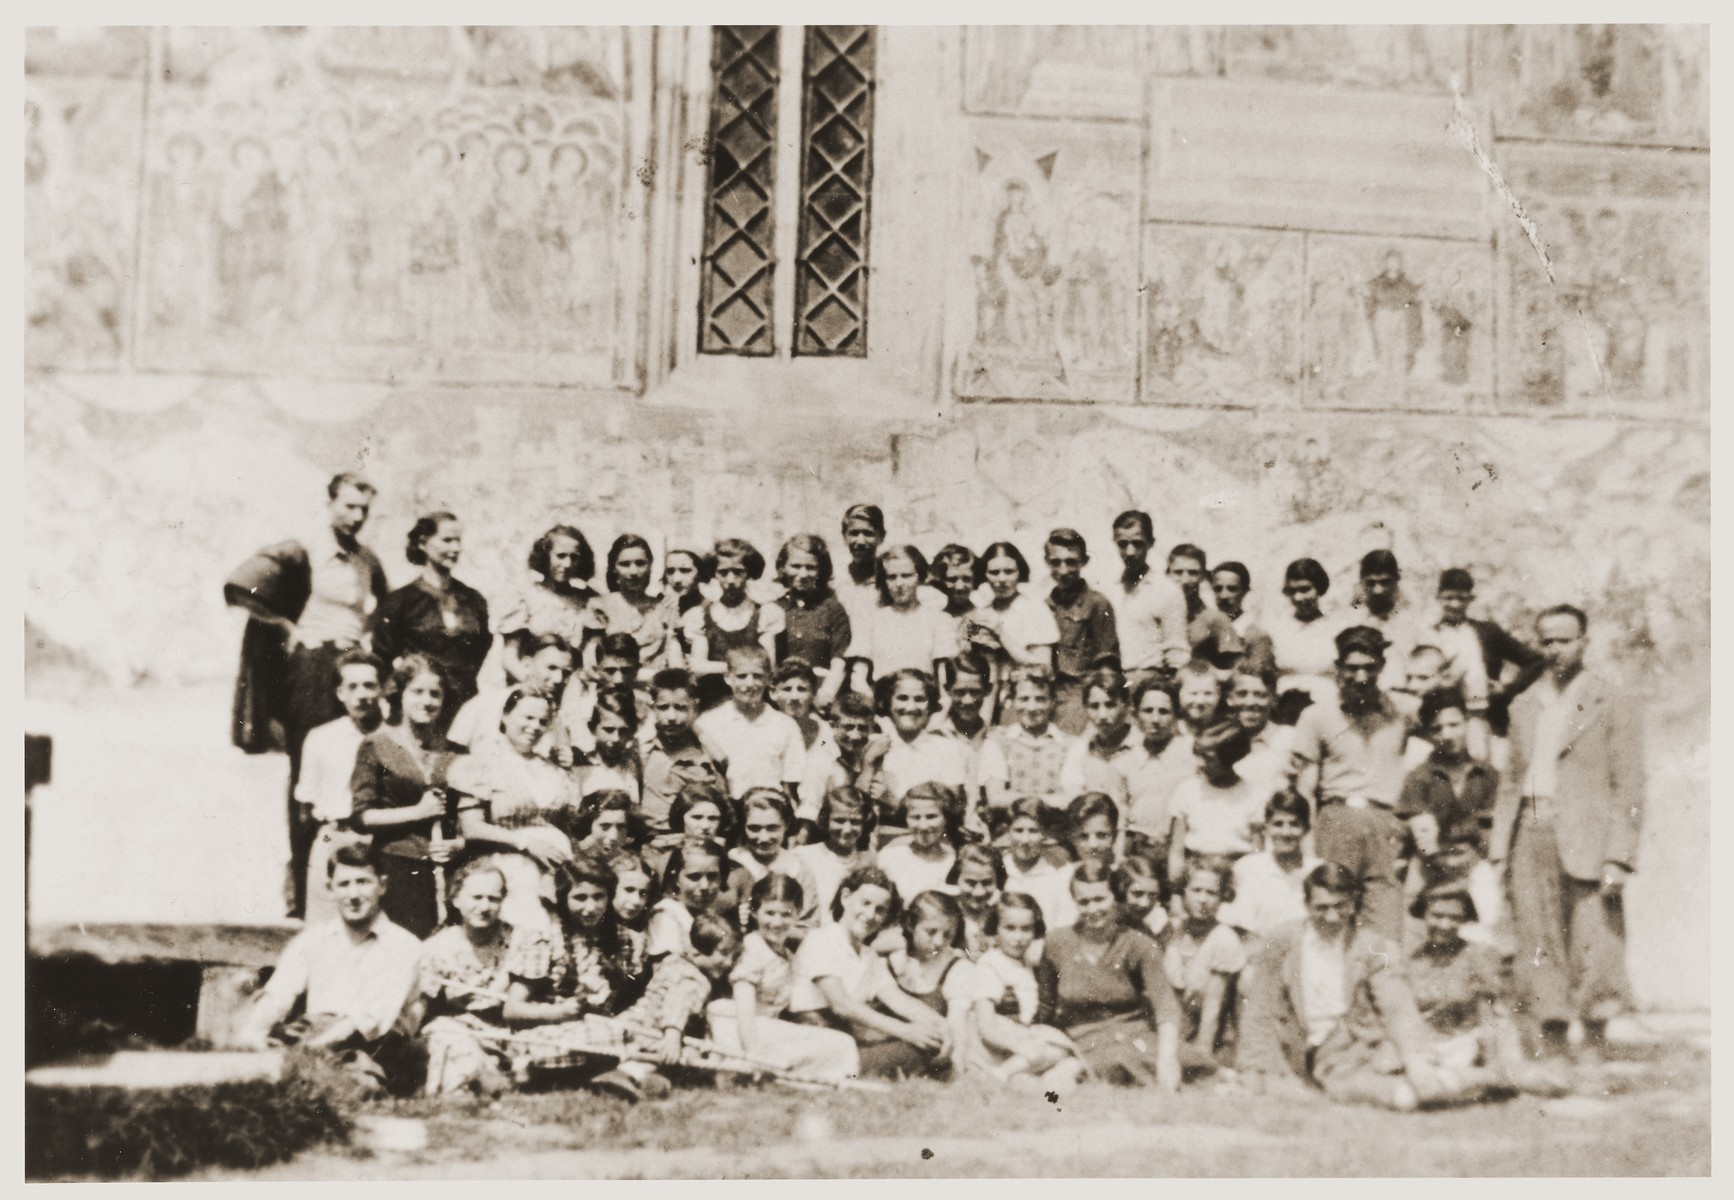 Group portrait of students from the Balan Girls Gymnasium taken while on an outing to the St. Stephen monastery in Moldavia.  Fritzi Brender stands in the top row, fourth from the right.